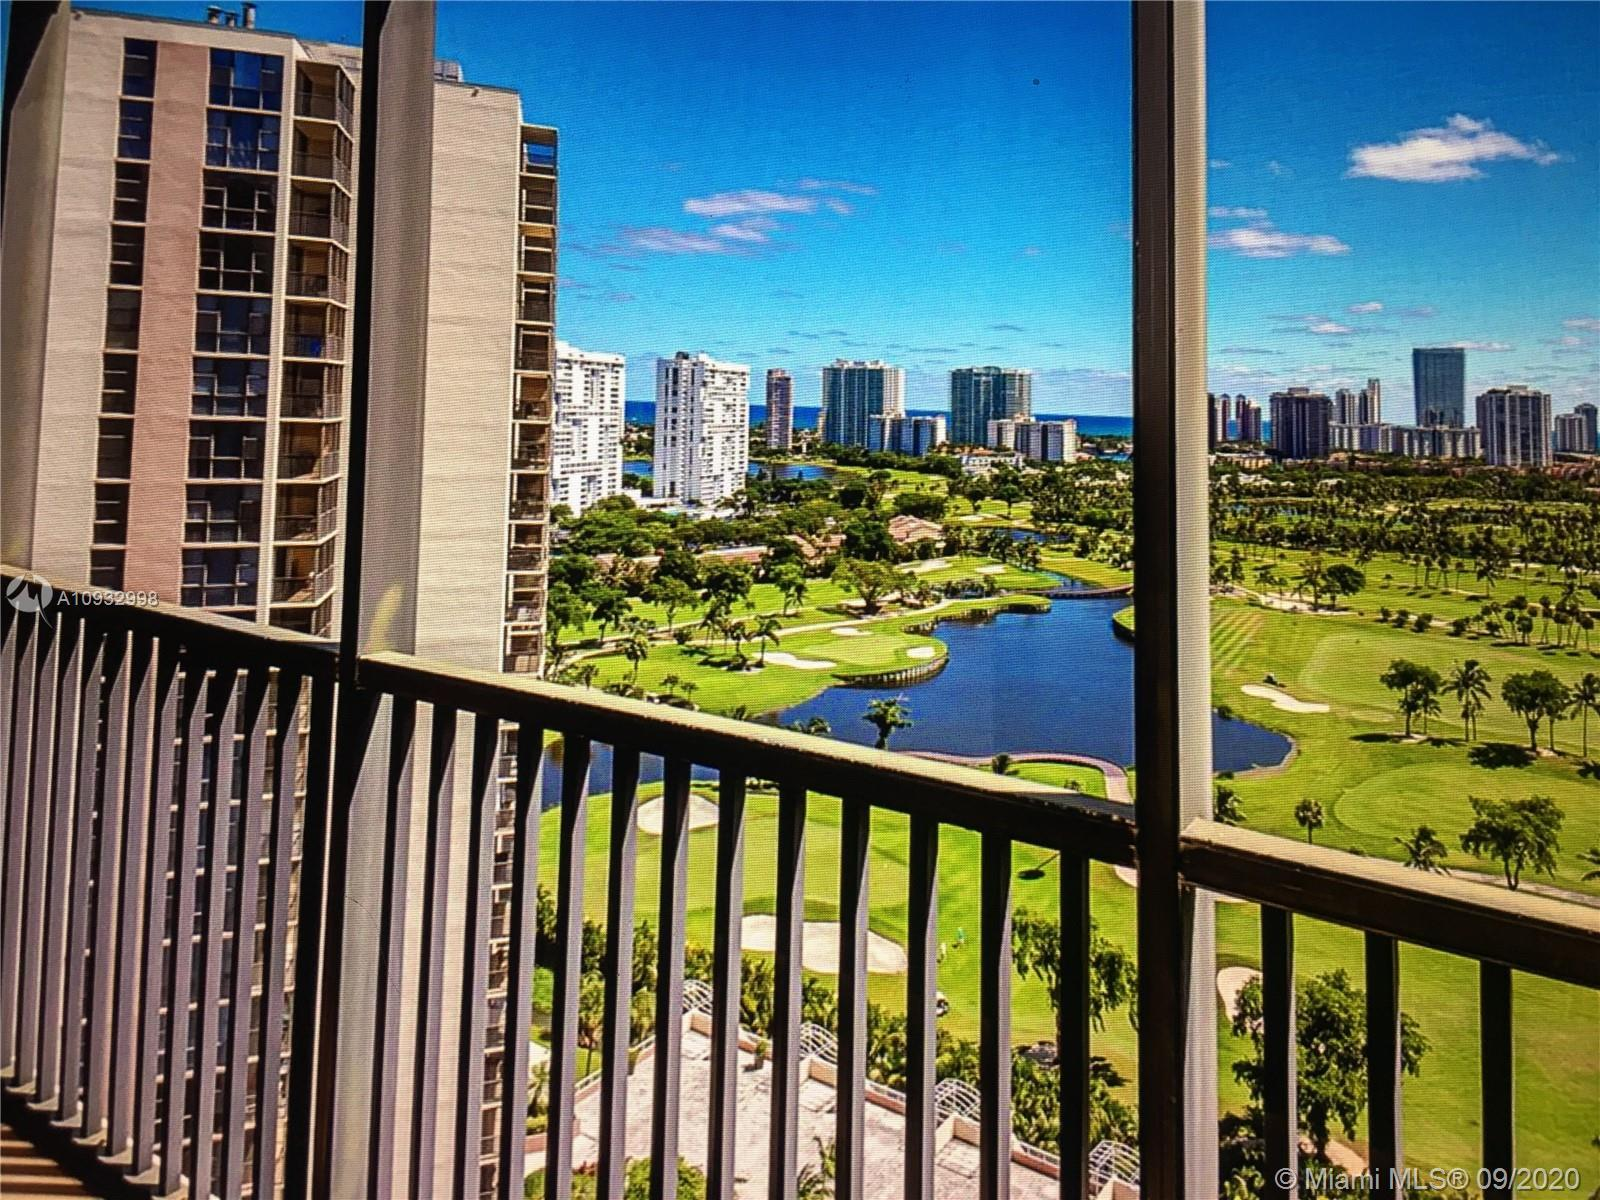 HEART OF AVENTURA WITH BREATHTAKING VIEWS OF TURNBERRY GOLF COURSE, OCEAN, POOL AND LAKE. THIS FLEXI